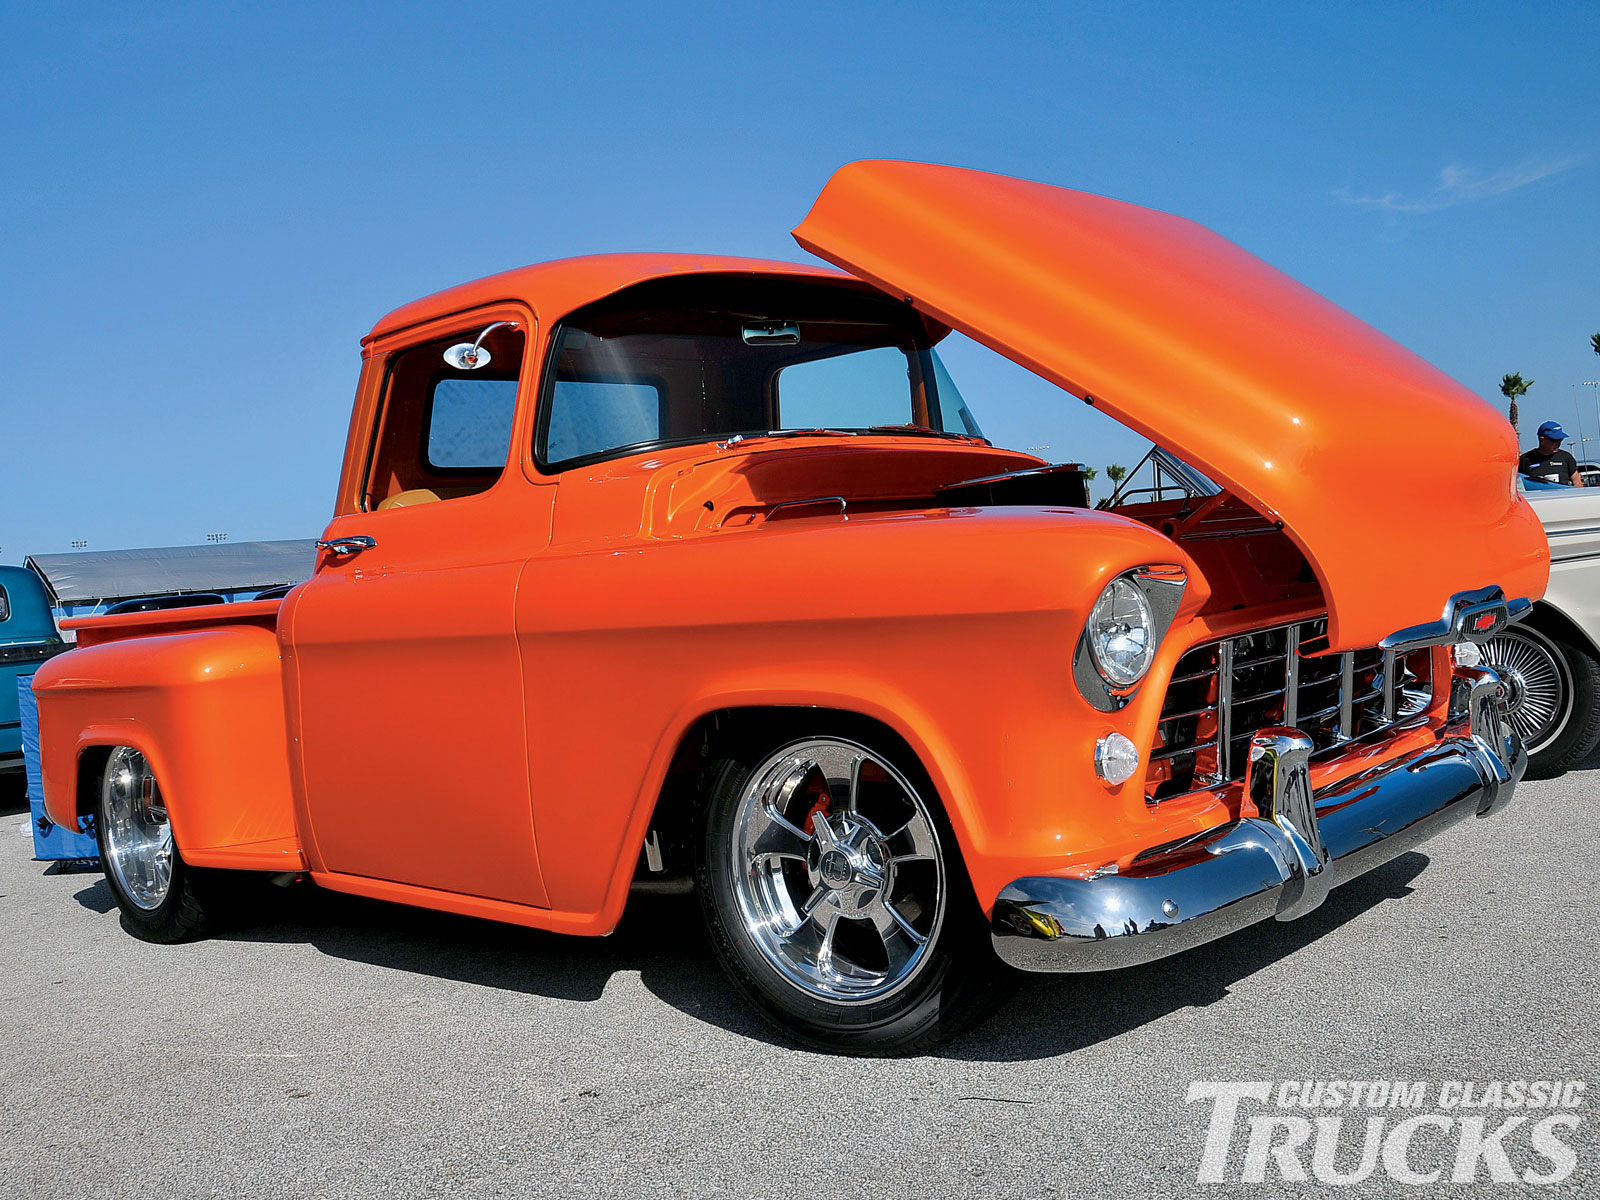 1230carswallpapers: Classic Chevy Pickup Trucks